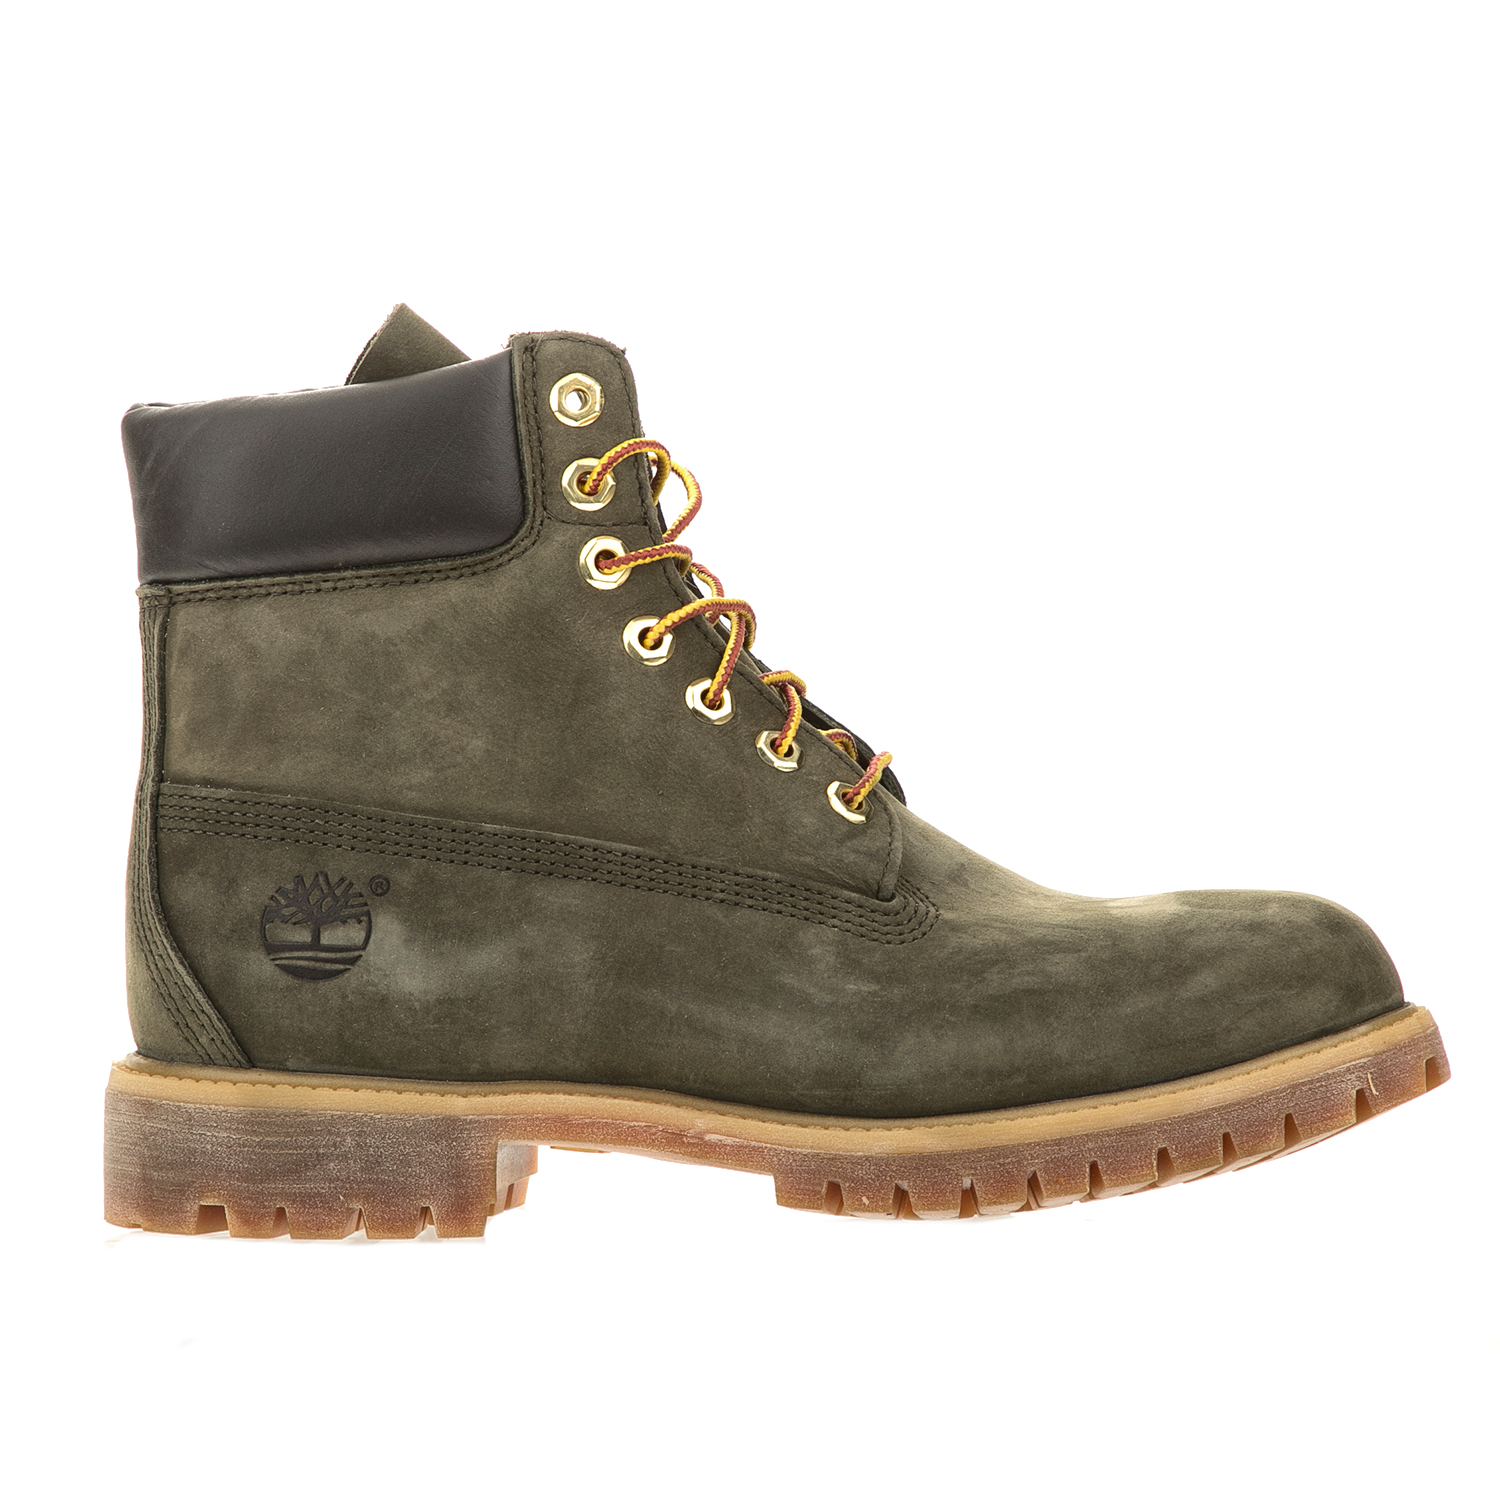 6a95524571ca TIMBERLAND - Ανδρικά μποτάκια TIMBERLAND 6'' PREM. χακί